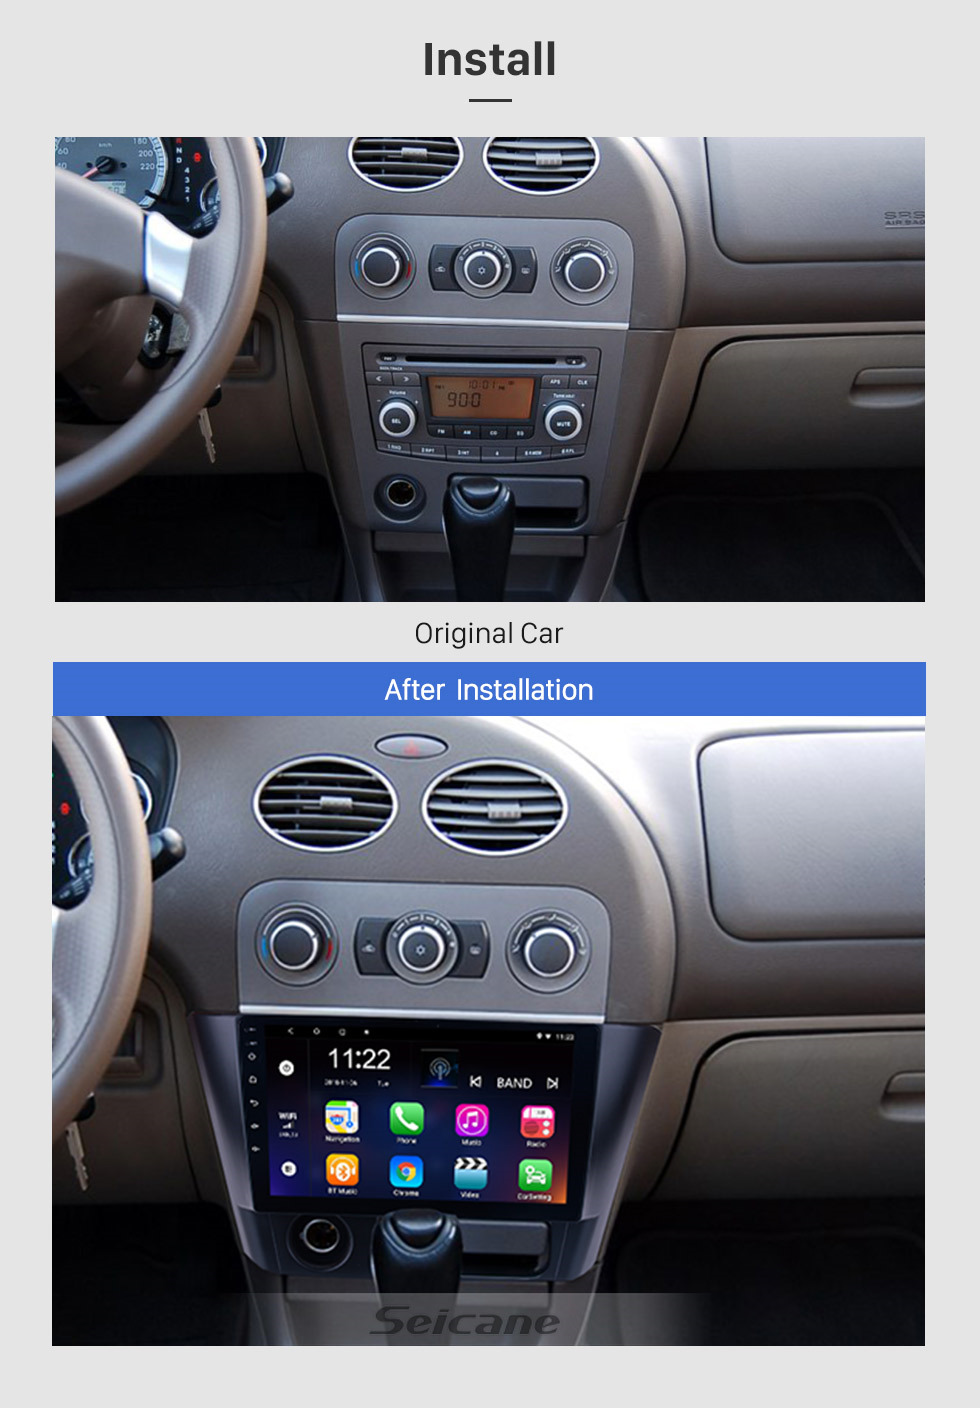 Seicane 2014 2015 2016 Mitsubishi Lancer Android 8.1 auto Stereo 9 inch HD Touch Screen Radio Head unit with GPS Navigation WiFi FM Bluetooth Music USB support Mirror Link Backup Camera Steering Wheel Control TPMS DVR